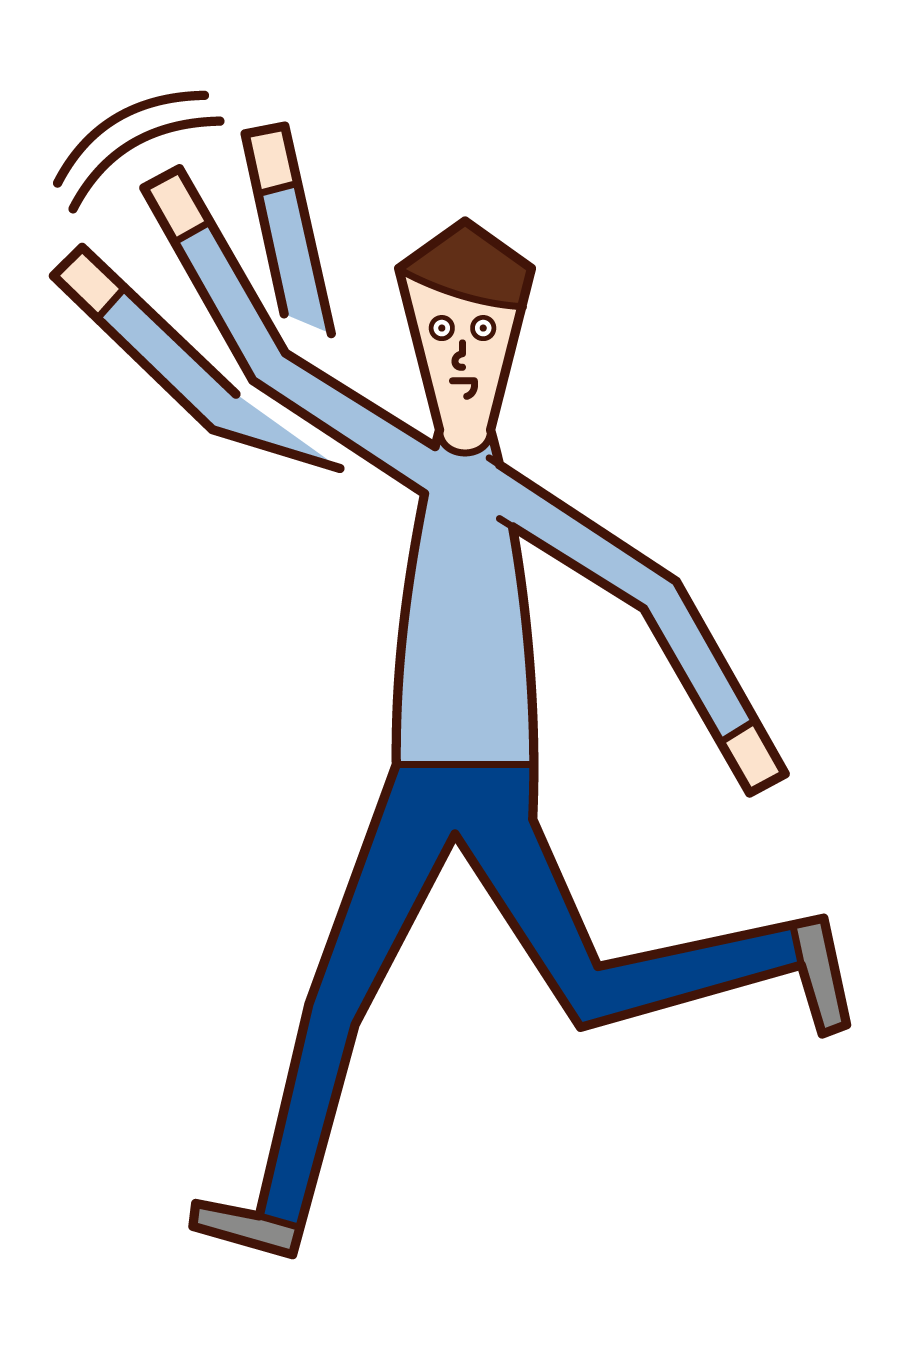 Illustration of a man waving his hand